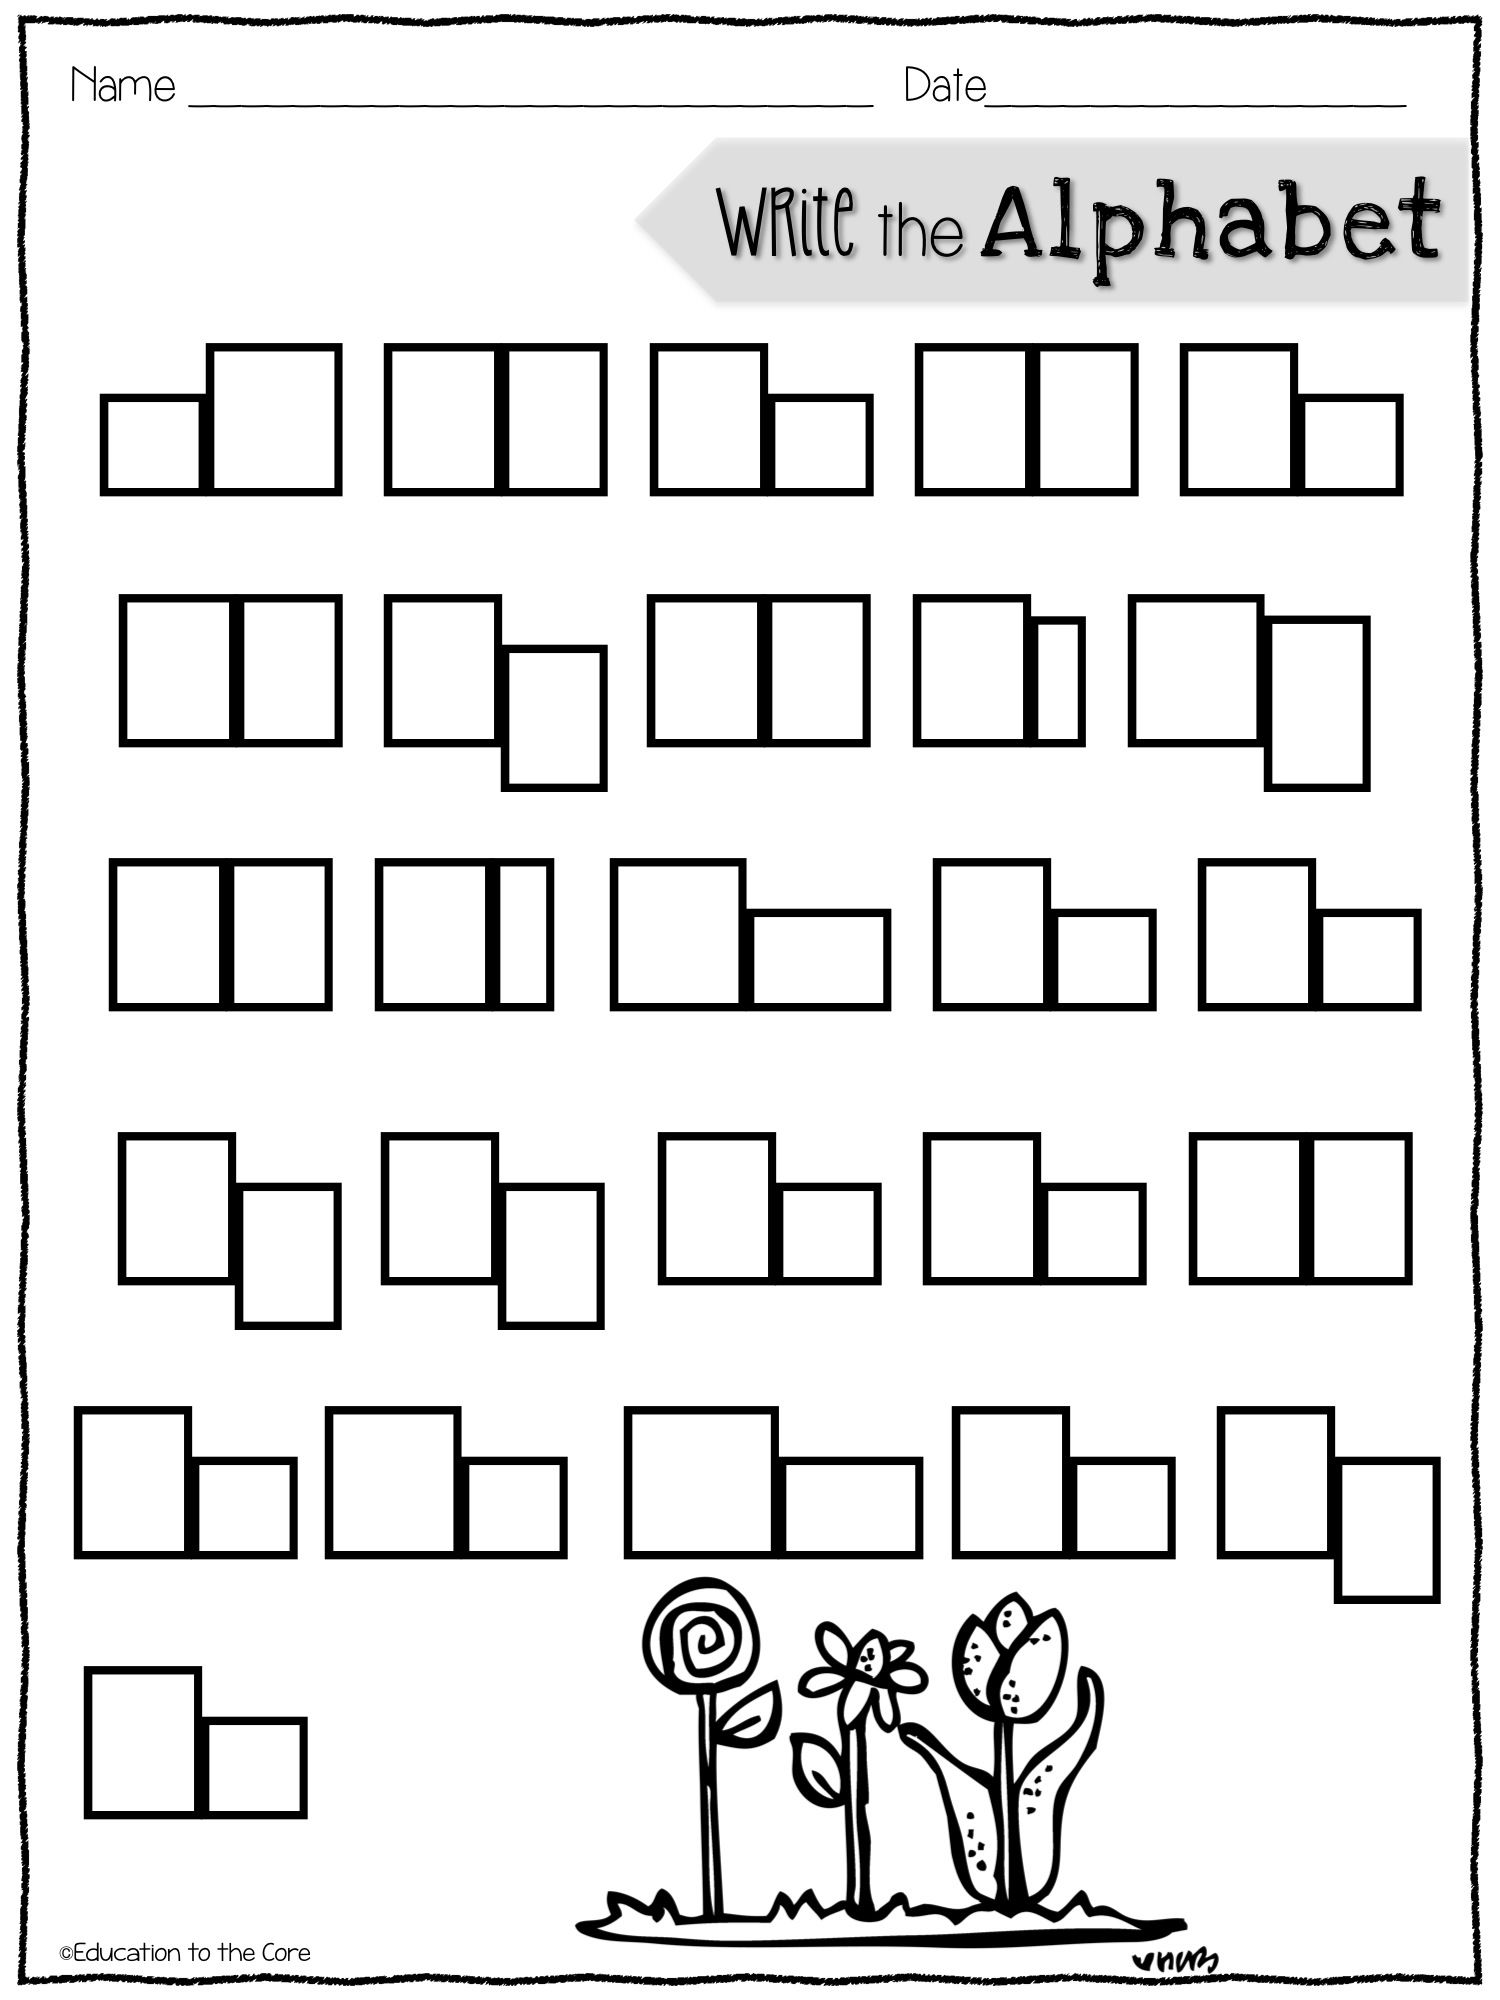 Worksheet Free Make Your Own Handwriting Worksheets Grass Fedjp Worksheet Study Site